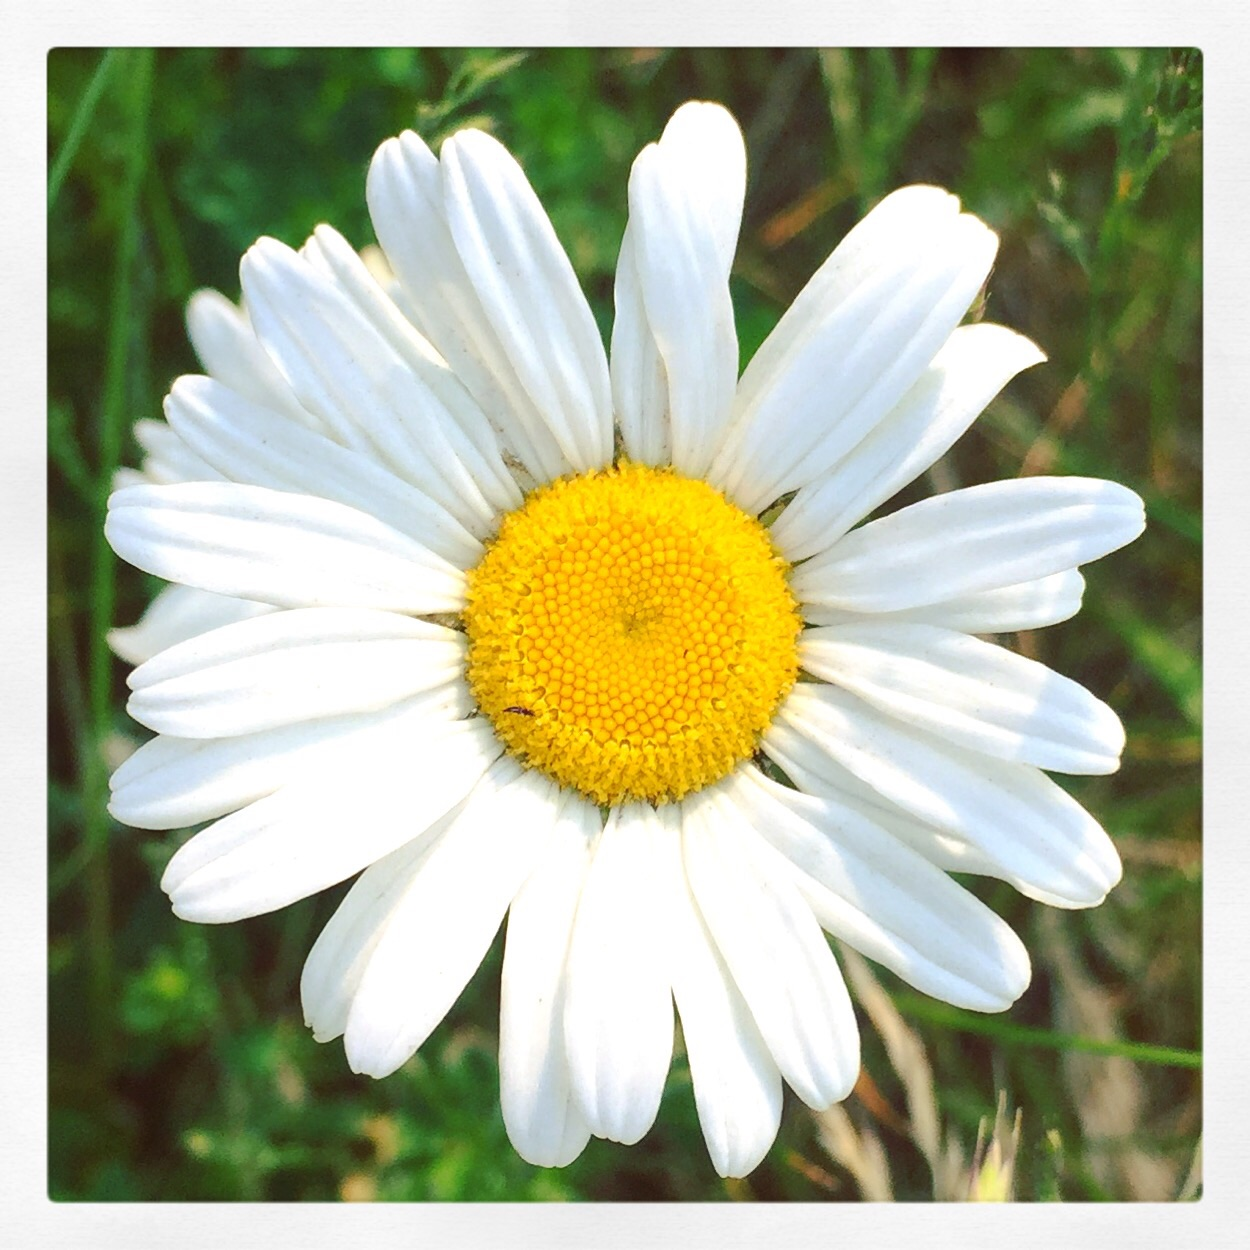 random wild daisies @ w 4th st bridge